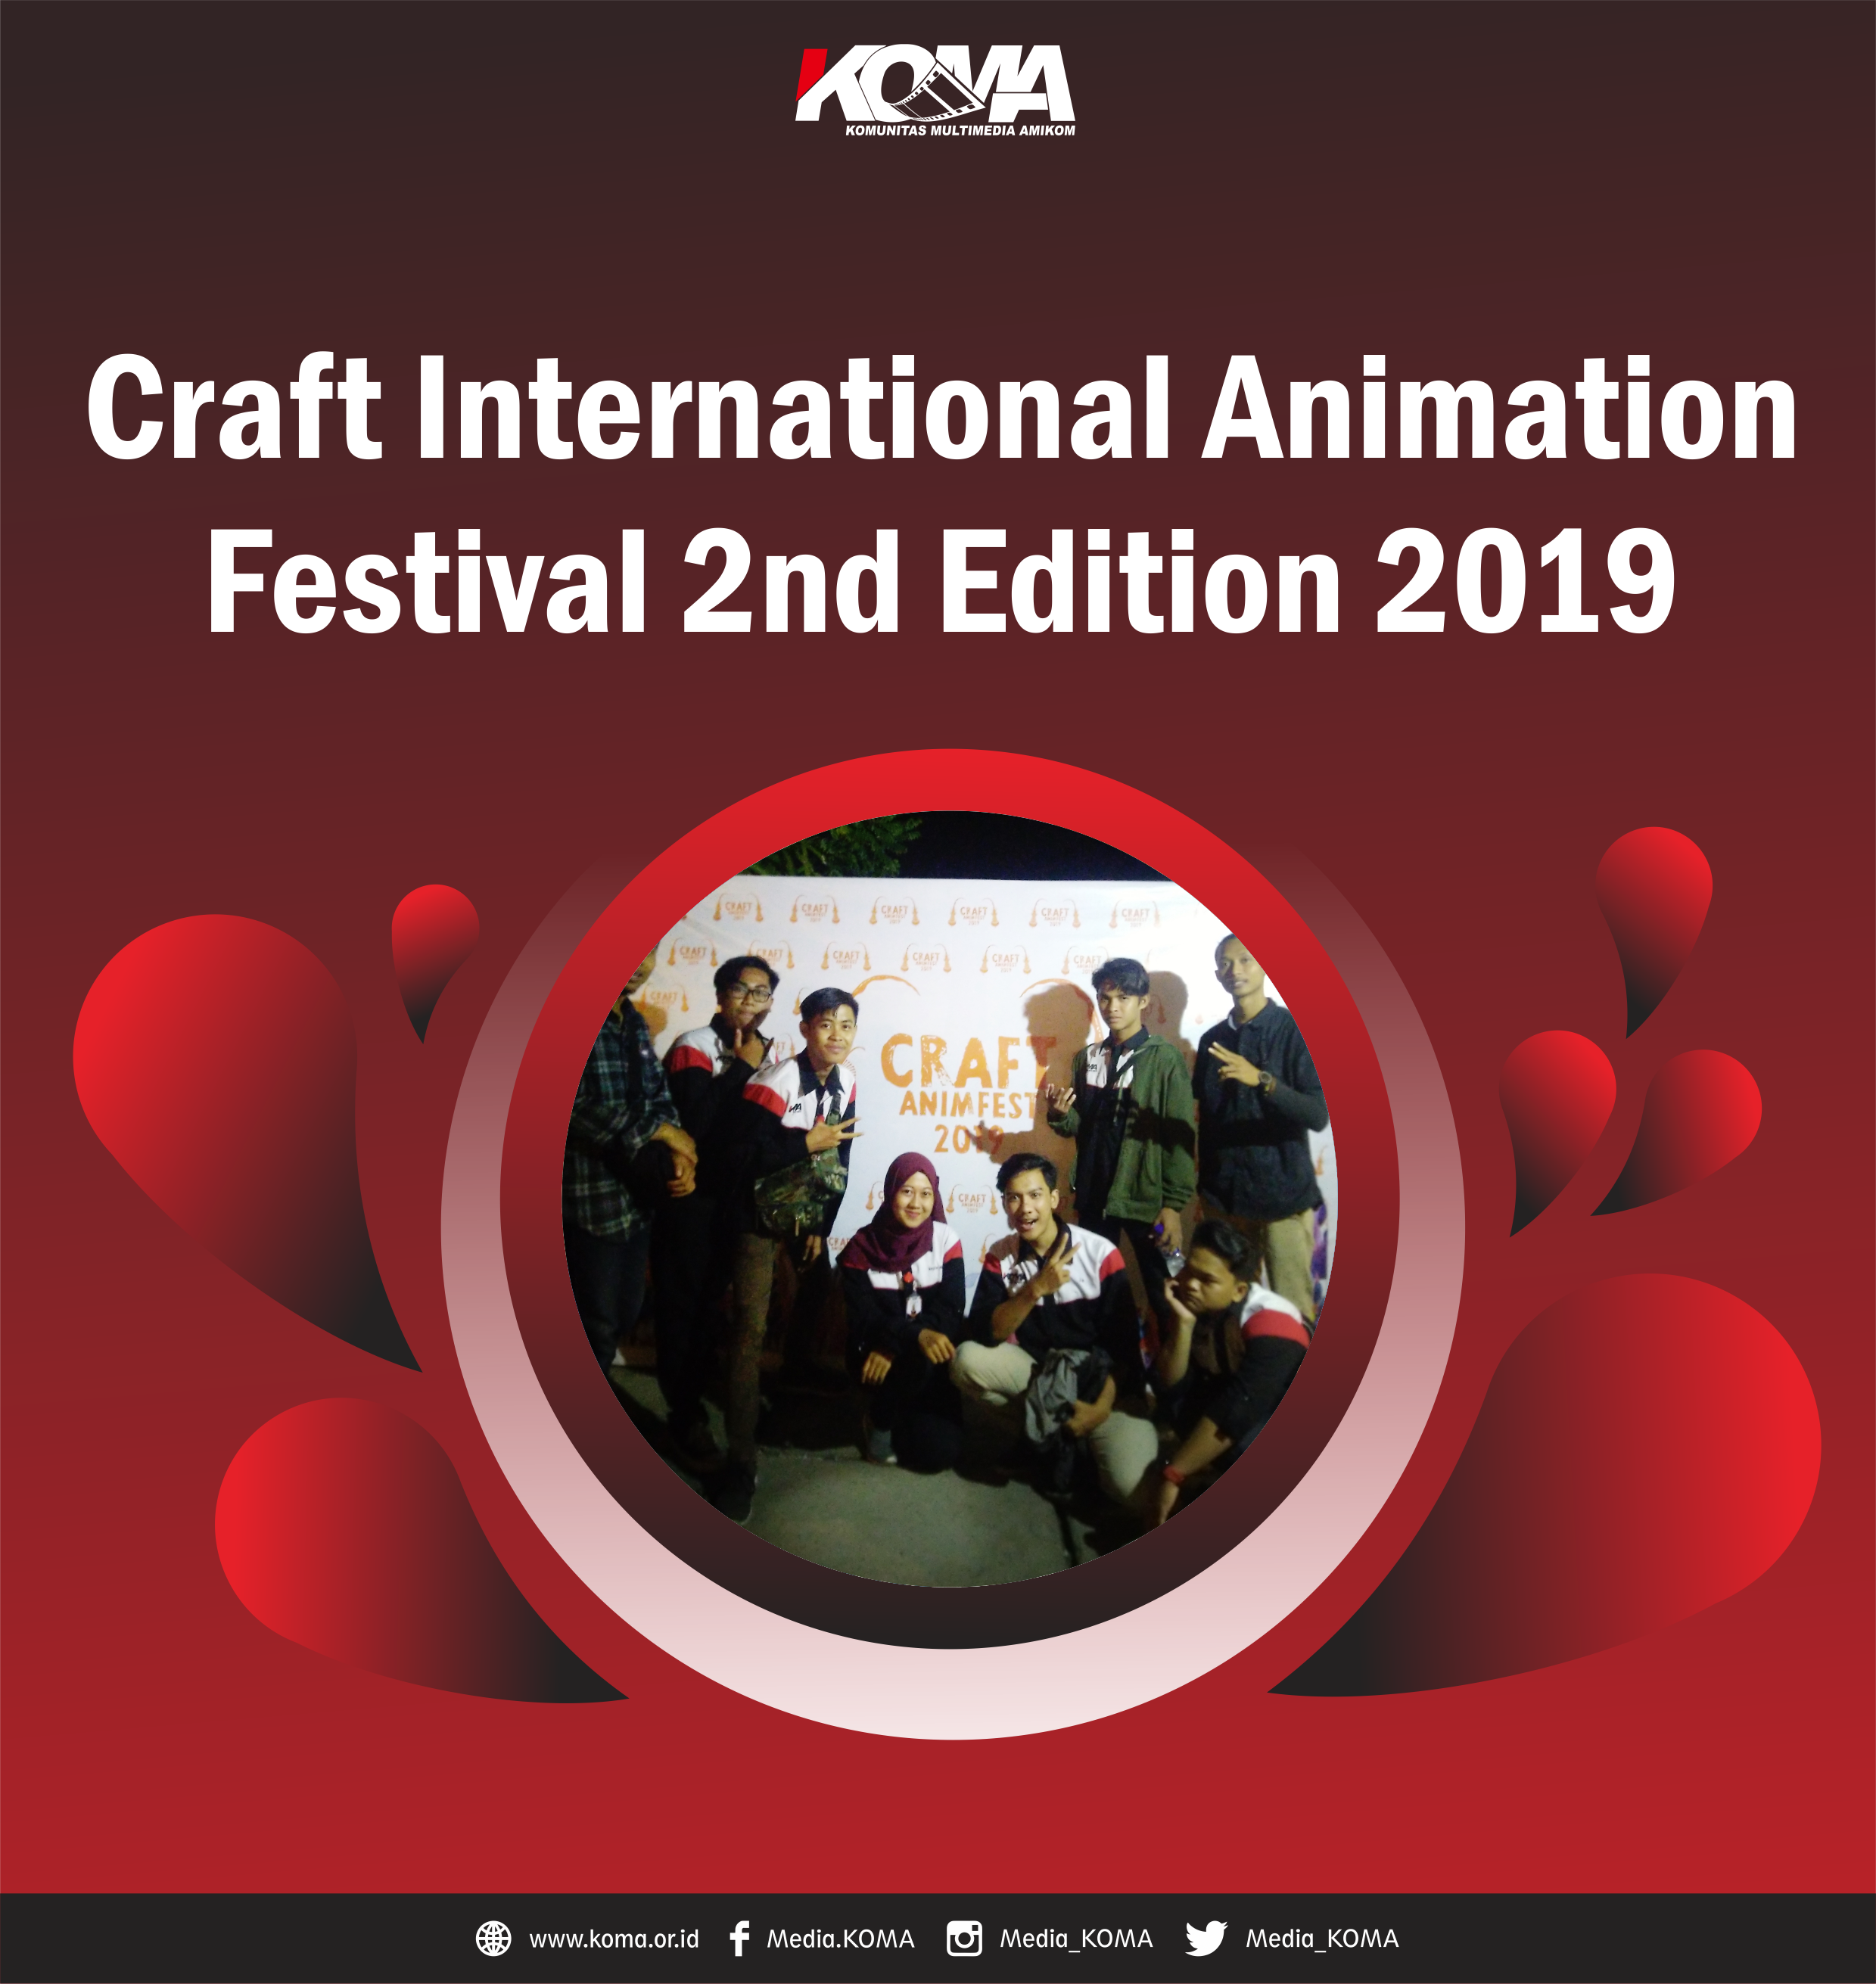 Craft-International-Animation-Festival-2nd-Edition-2019